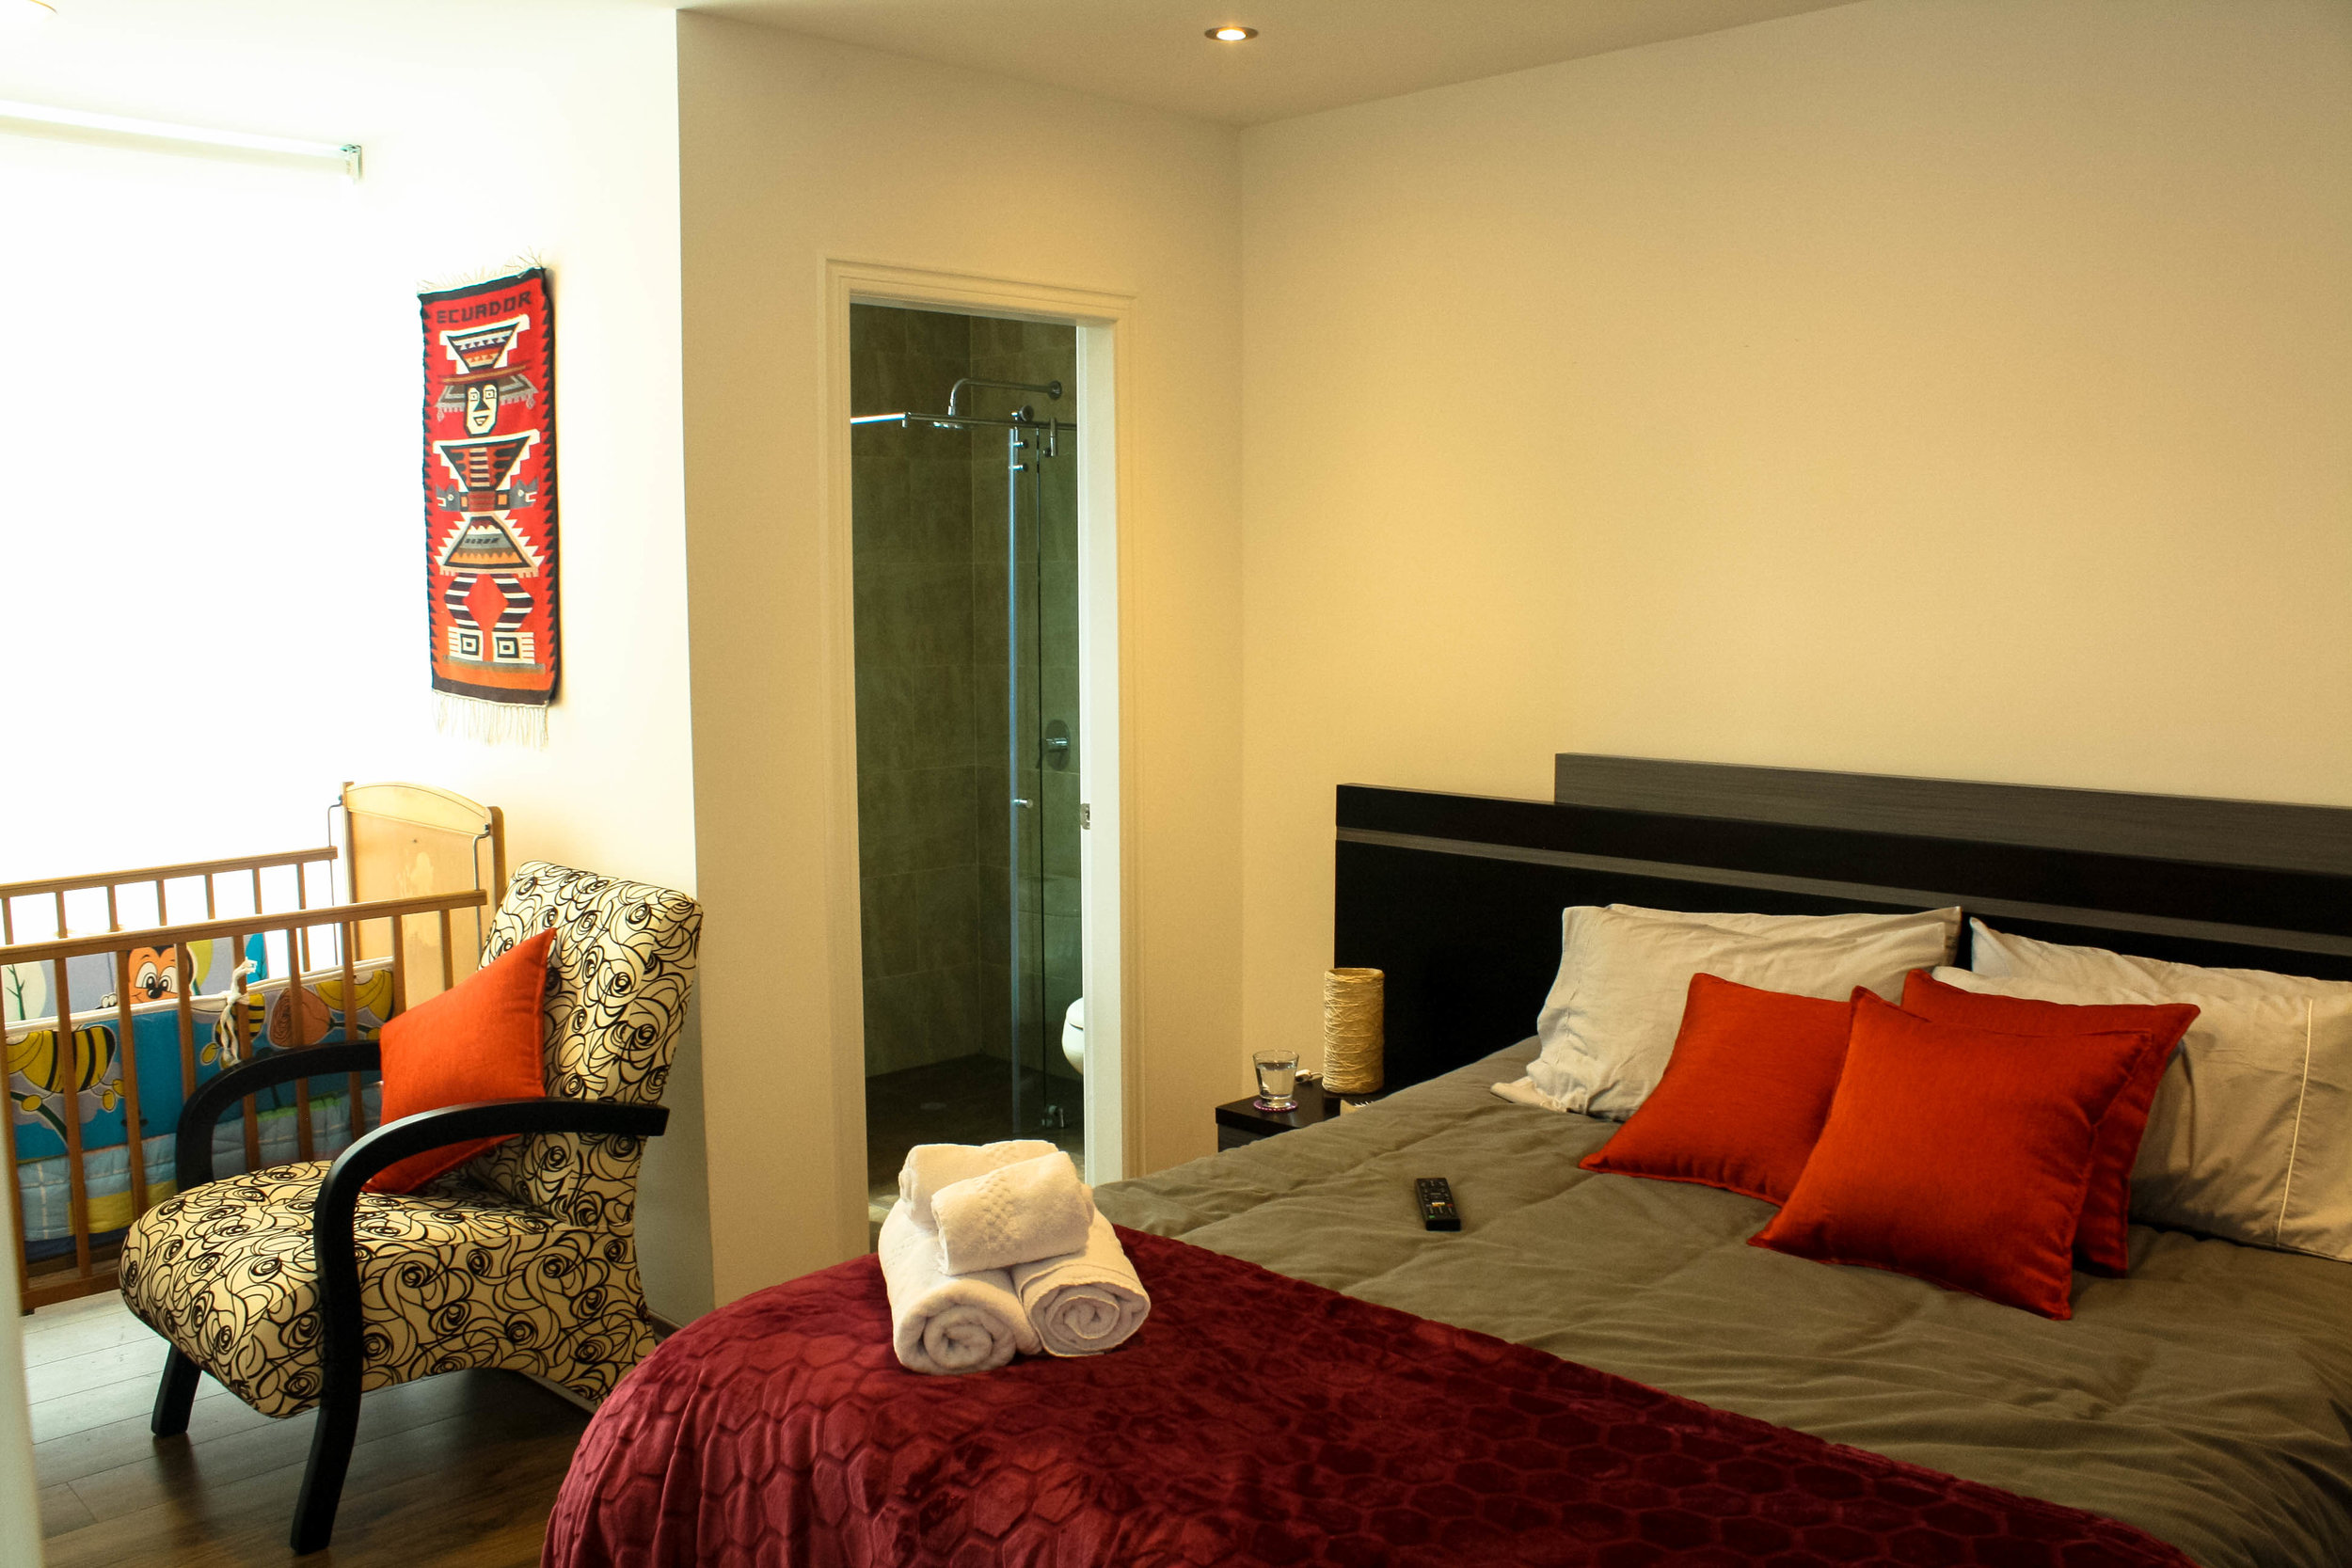 BEGONIA SUITE FOR 4 / Starting at $105 per night (breakfast & taxes included) - With a king size bed, a queen size sofa cama that fit up to four people, It features a dinette set for working or eating, having some fun with table games.Special Ecuadorian Breakfast served each mornig.